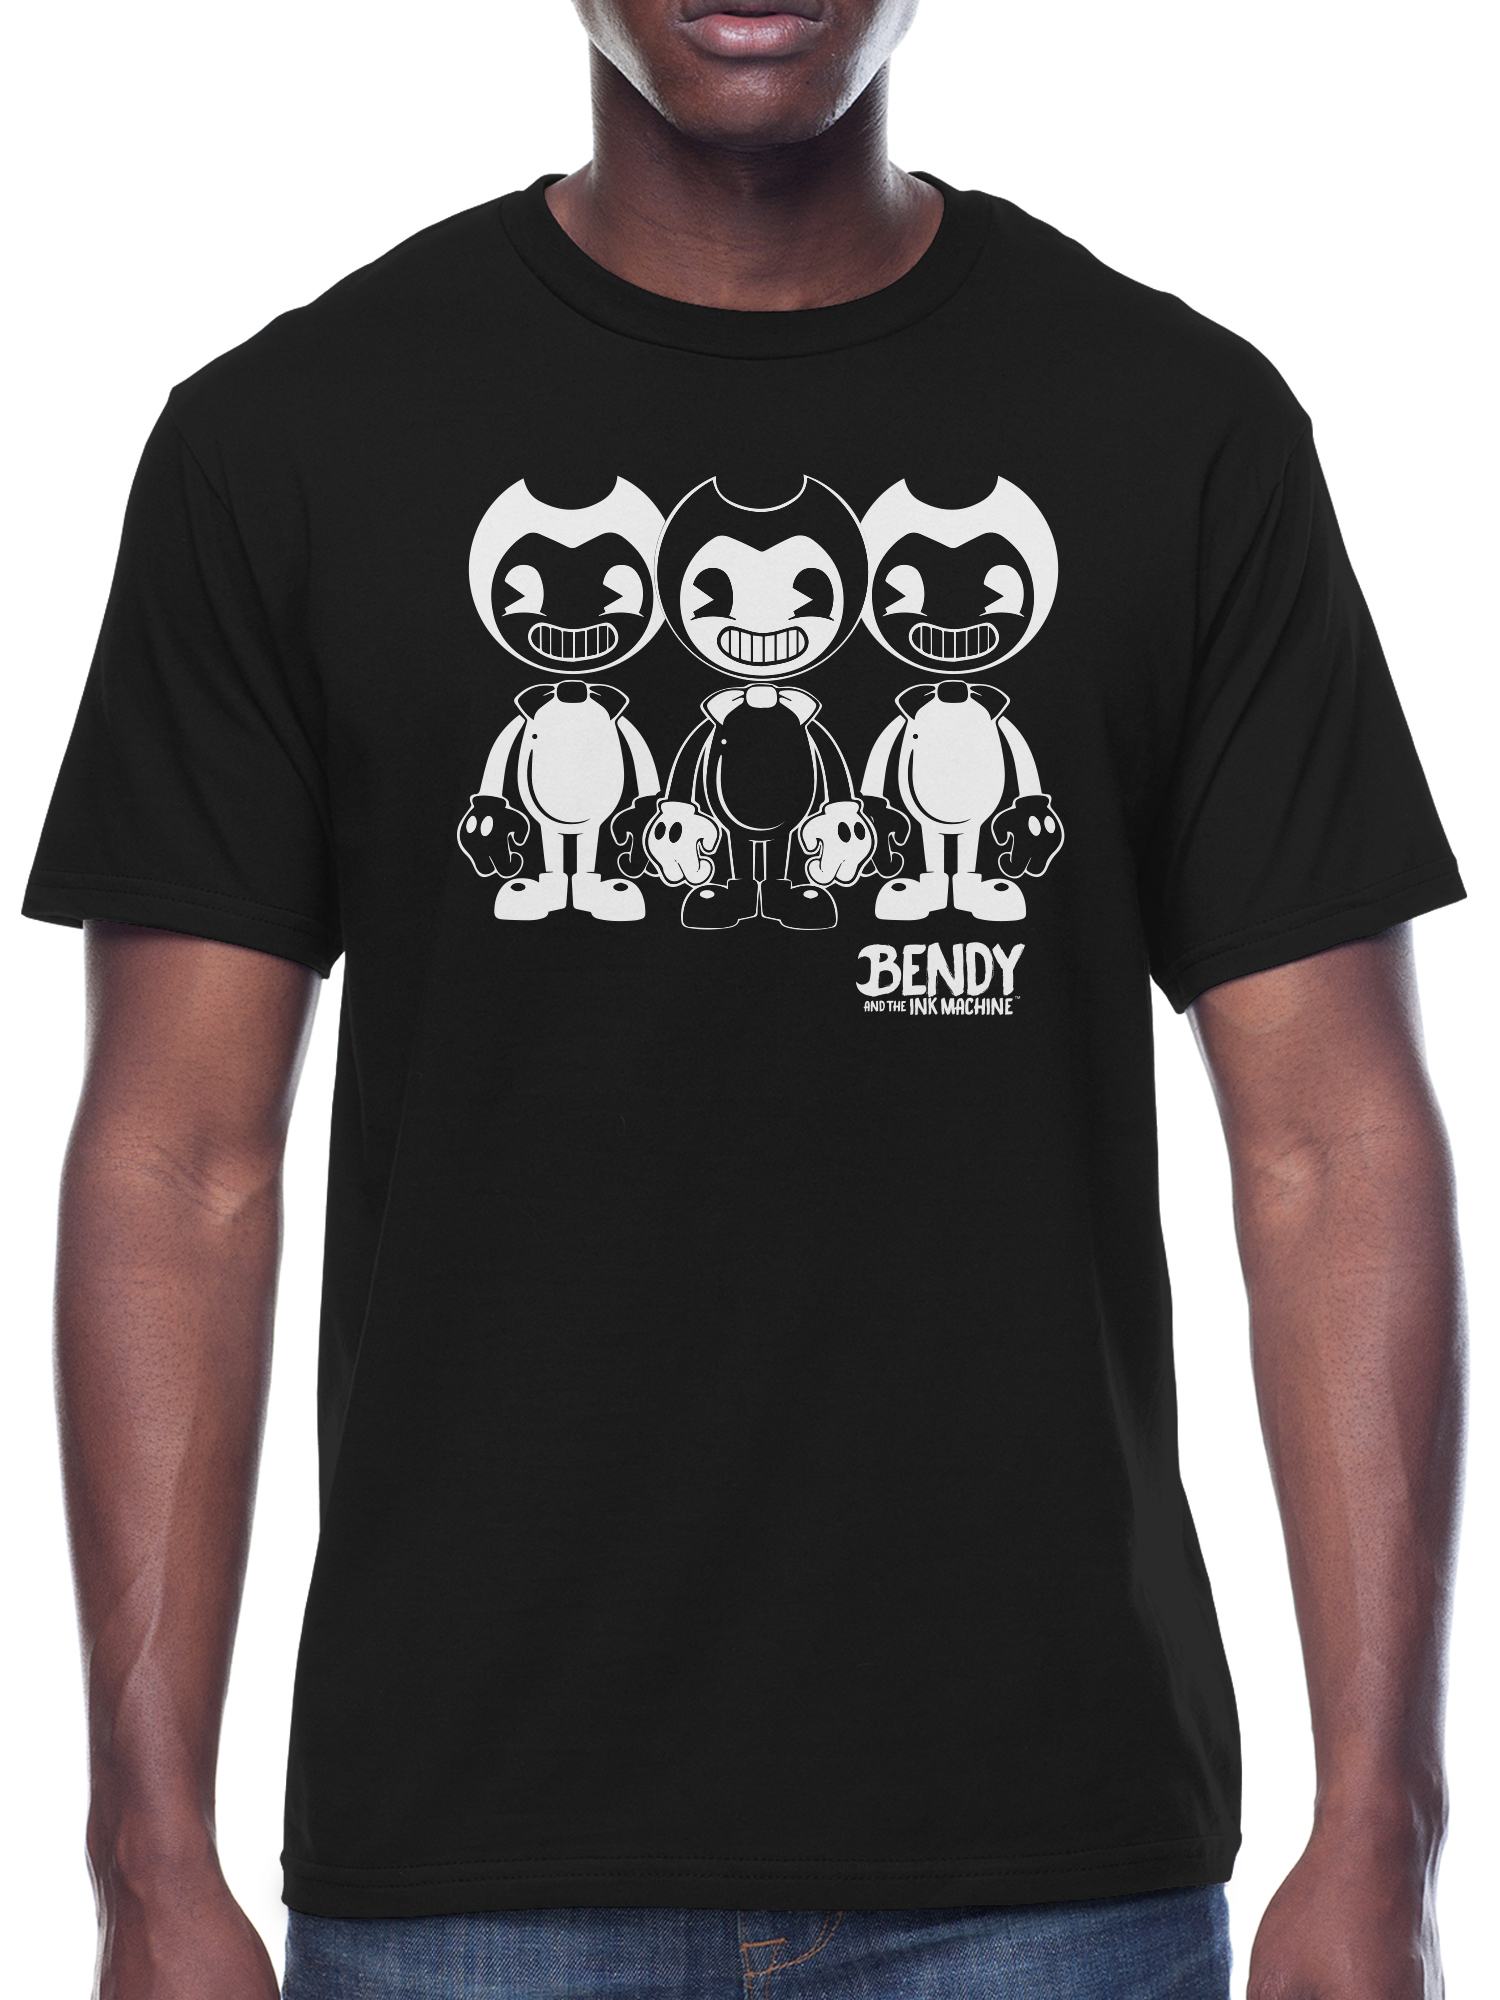 Bendy and the Ink Machine Men's and Big Men's Graphic T-shirt